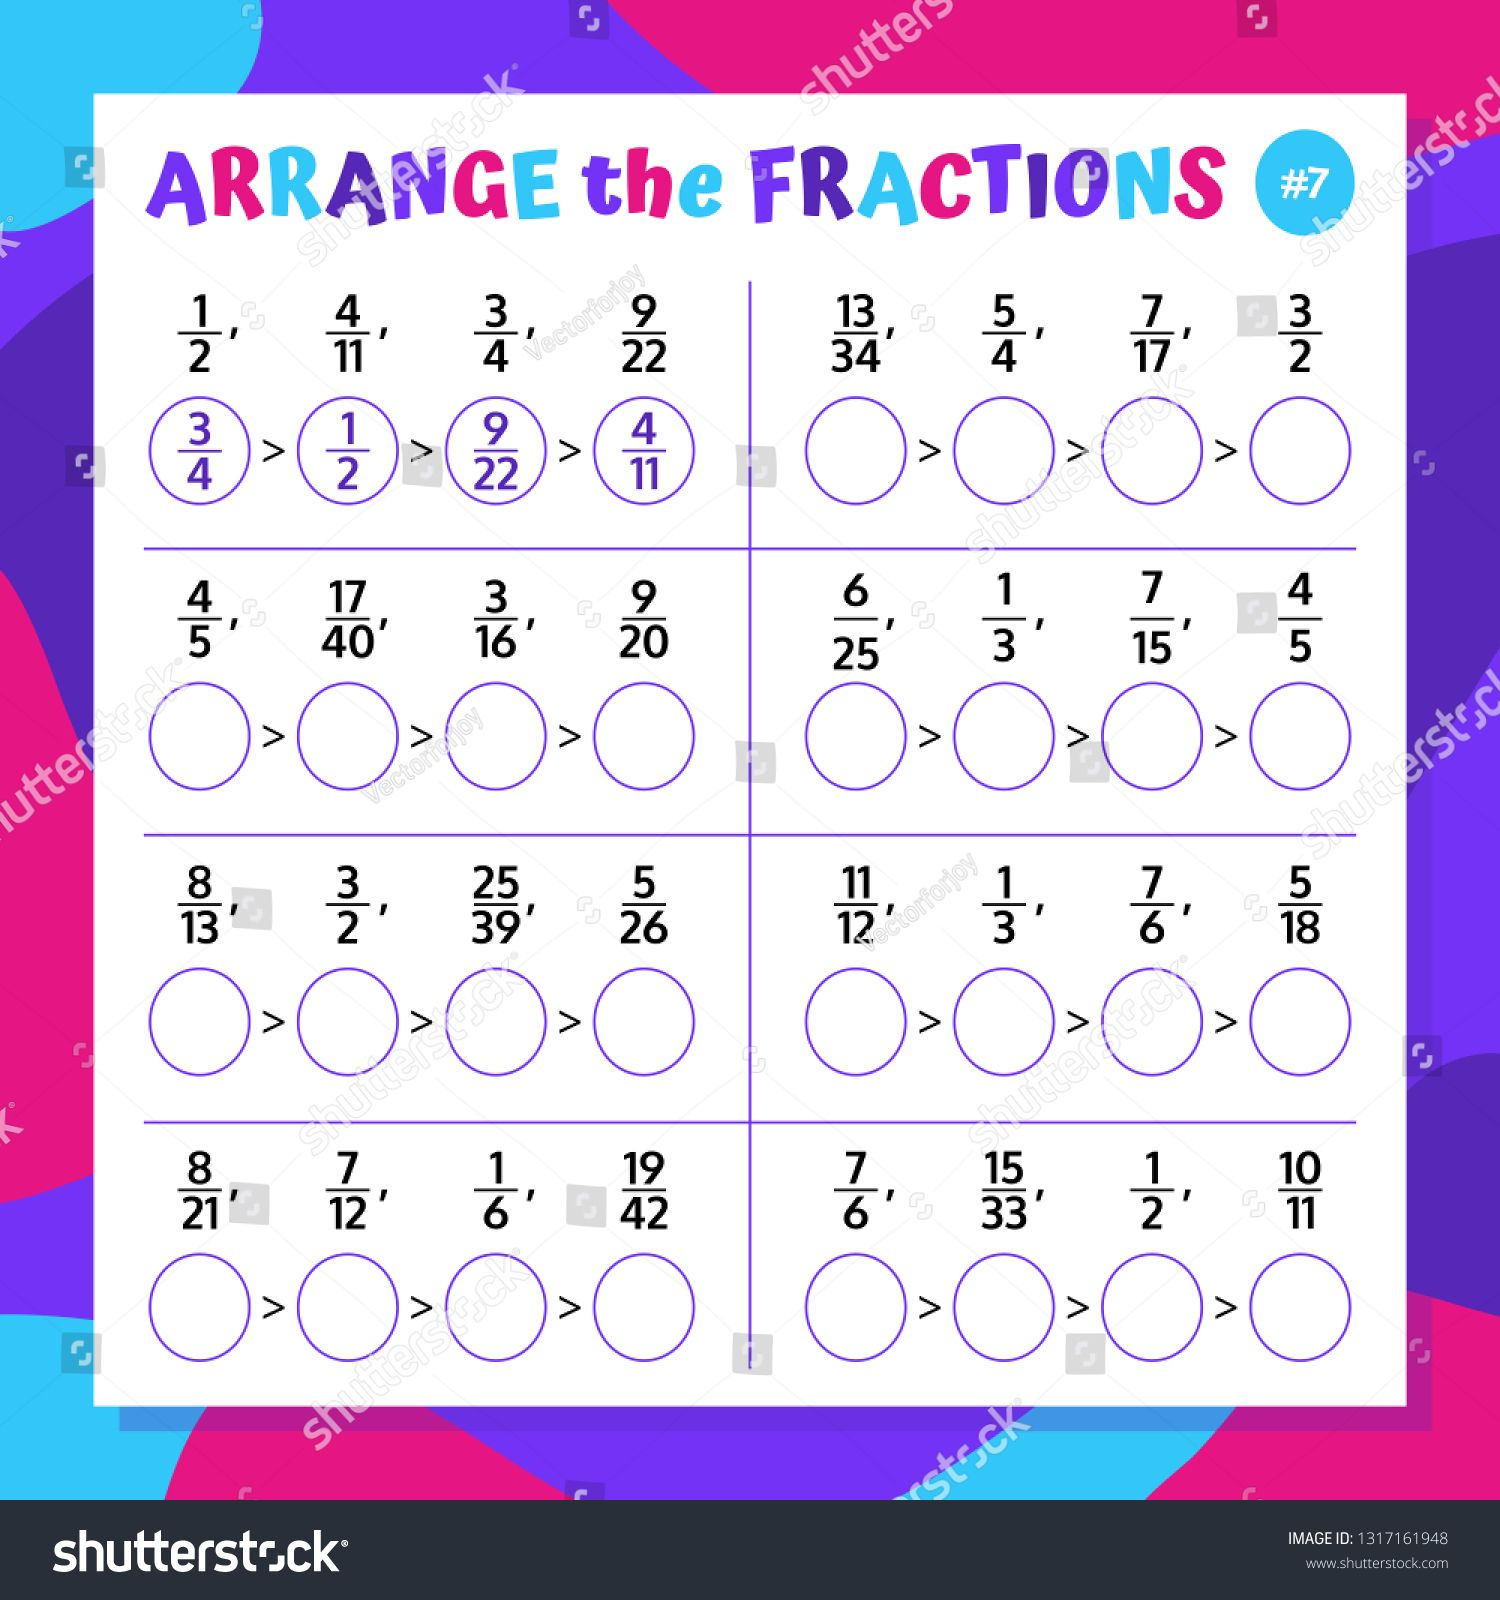 Comparing And Ranging The Fractions Mathematical Worksheet